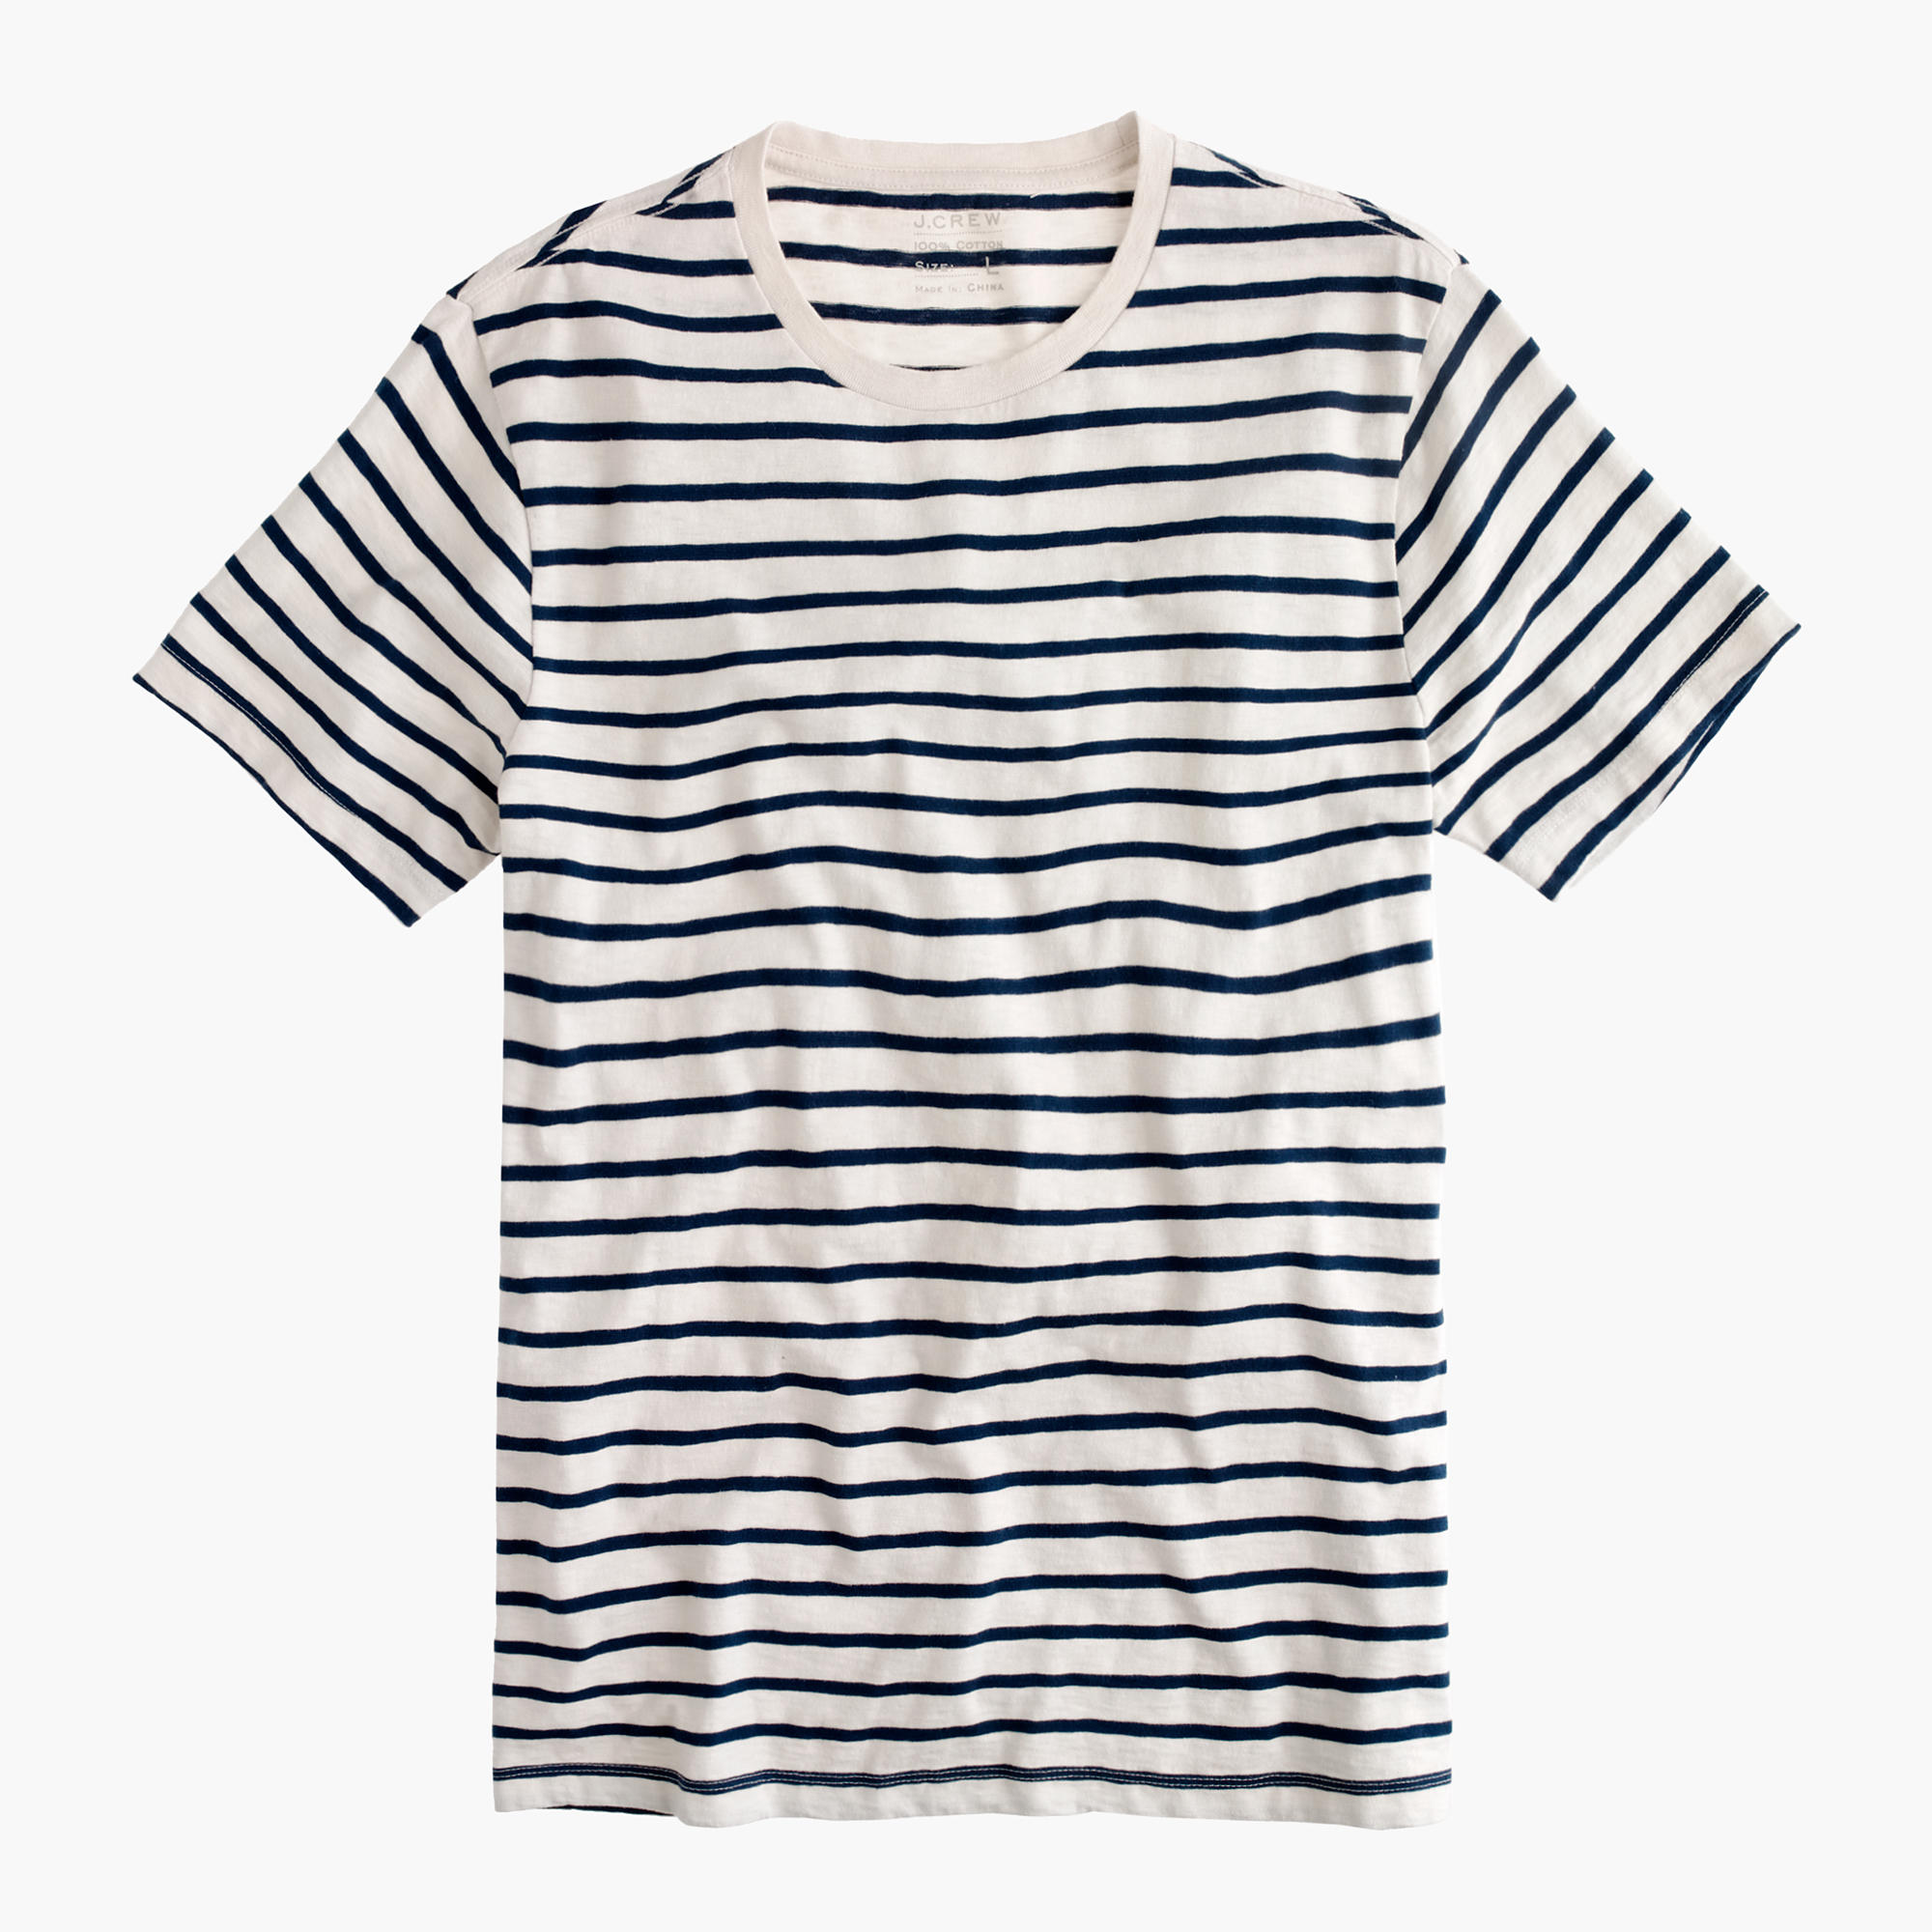 Shop for yellow striped tee shirt online at Target. Free shipping on purchases over $35 and save 5% every day with your Target REDcard.